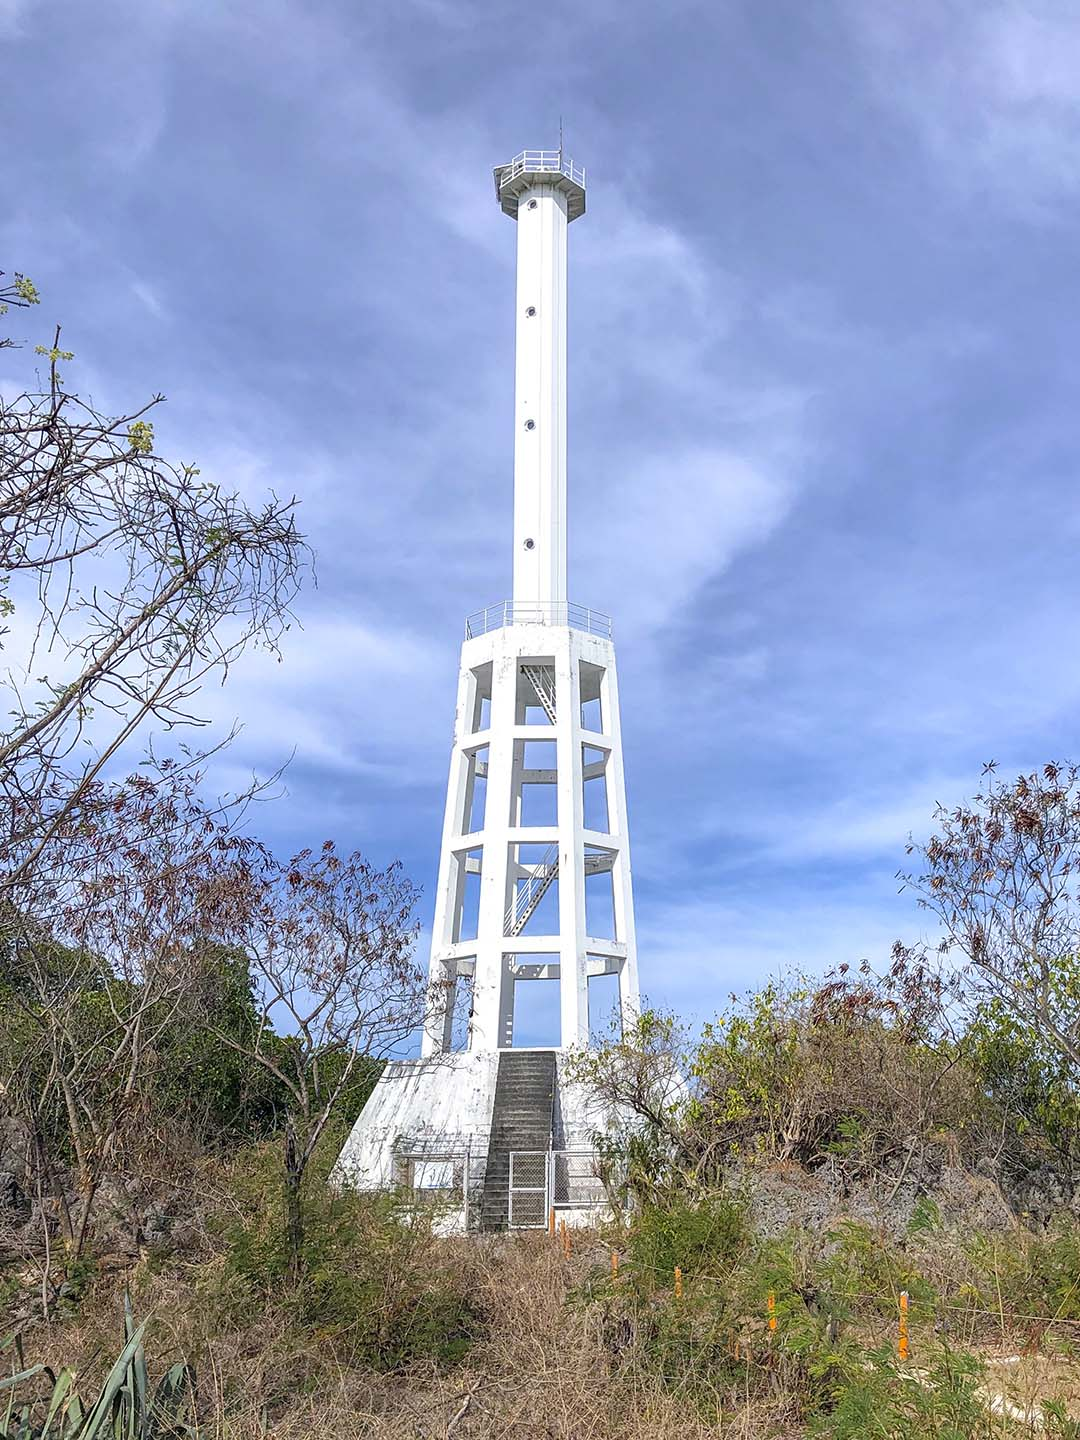 The lighthouse in Apo Island